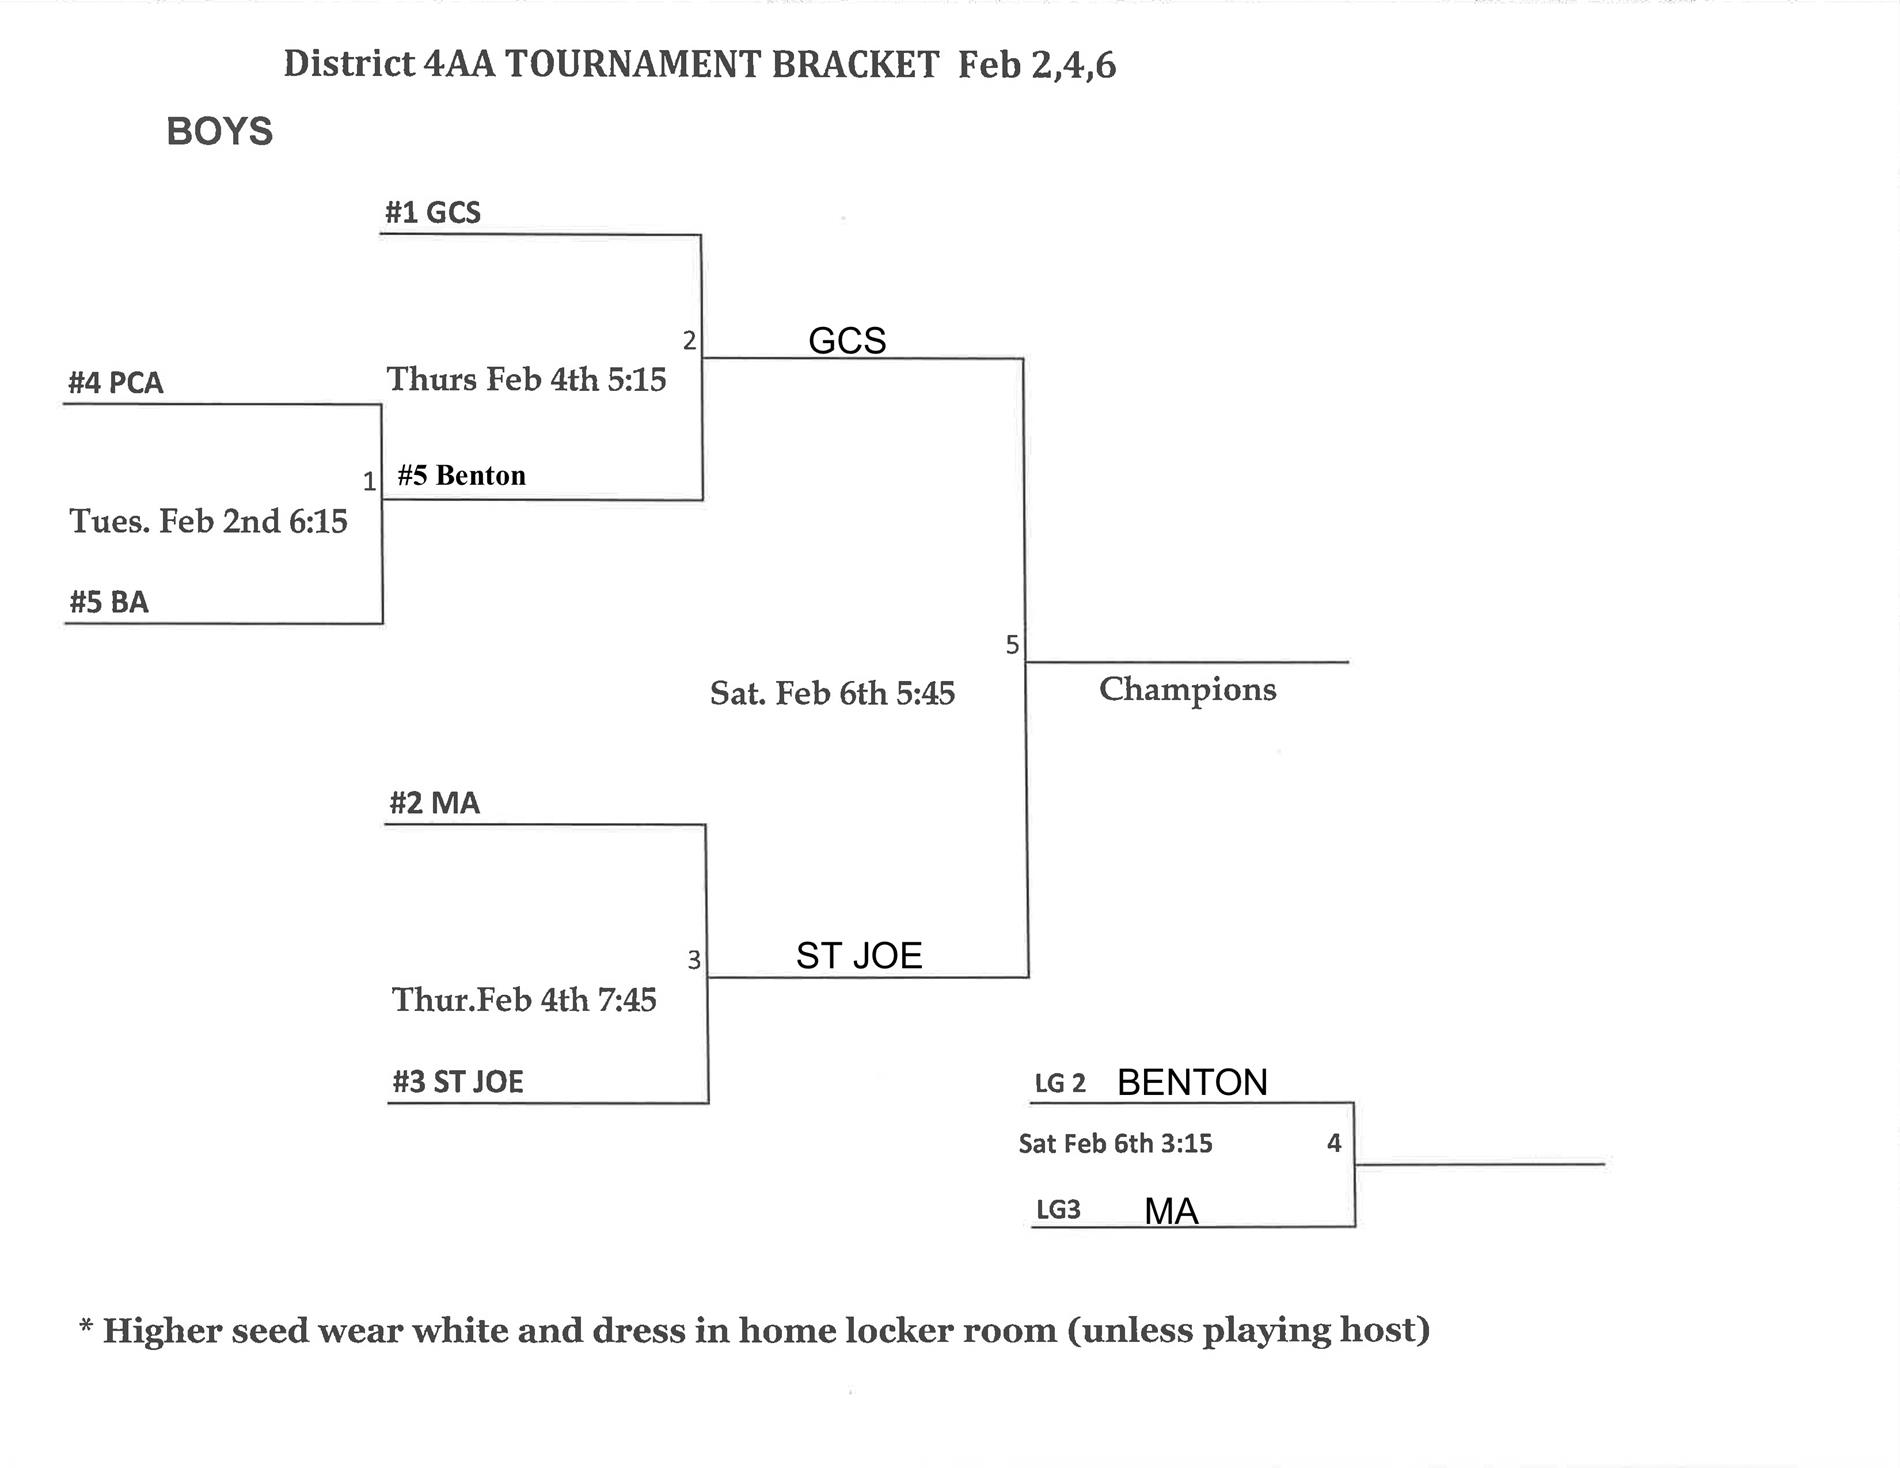 District 4AA Boys Tournament Bracket